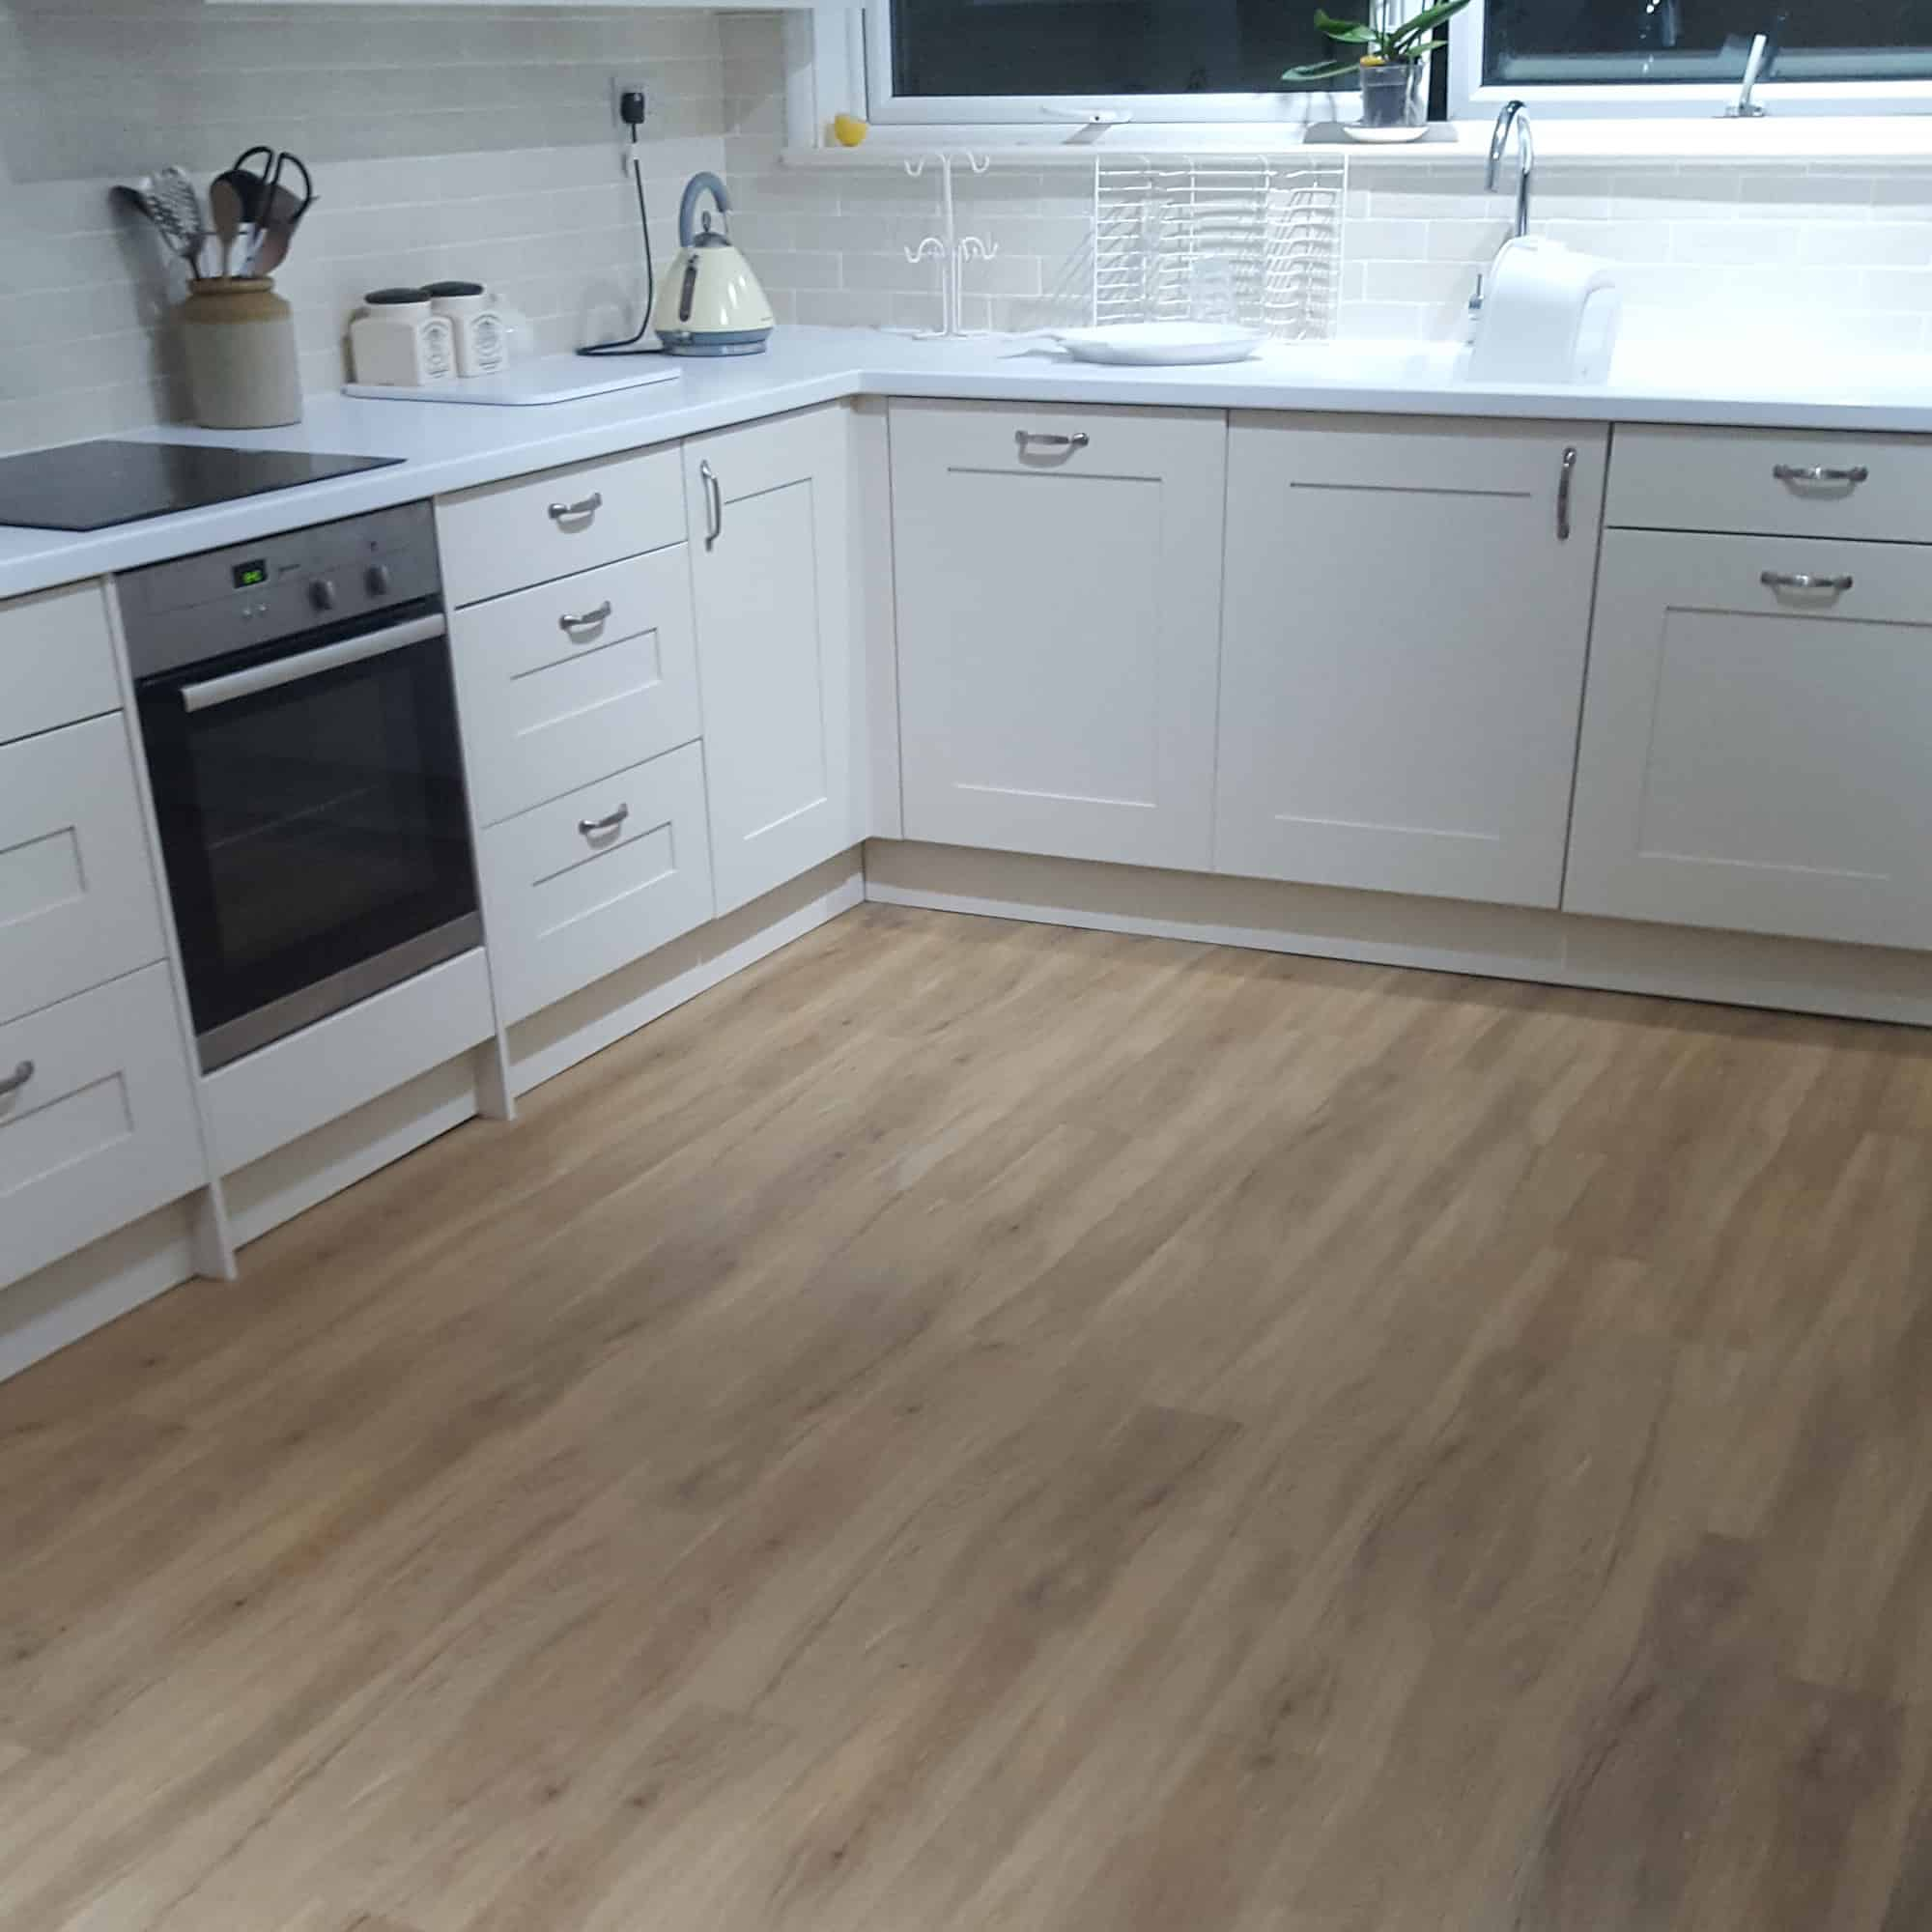 LVT wood effect flooring in kitchen